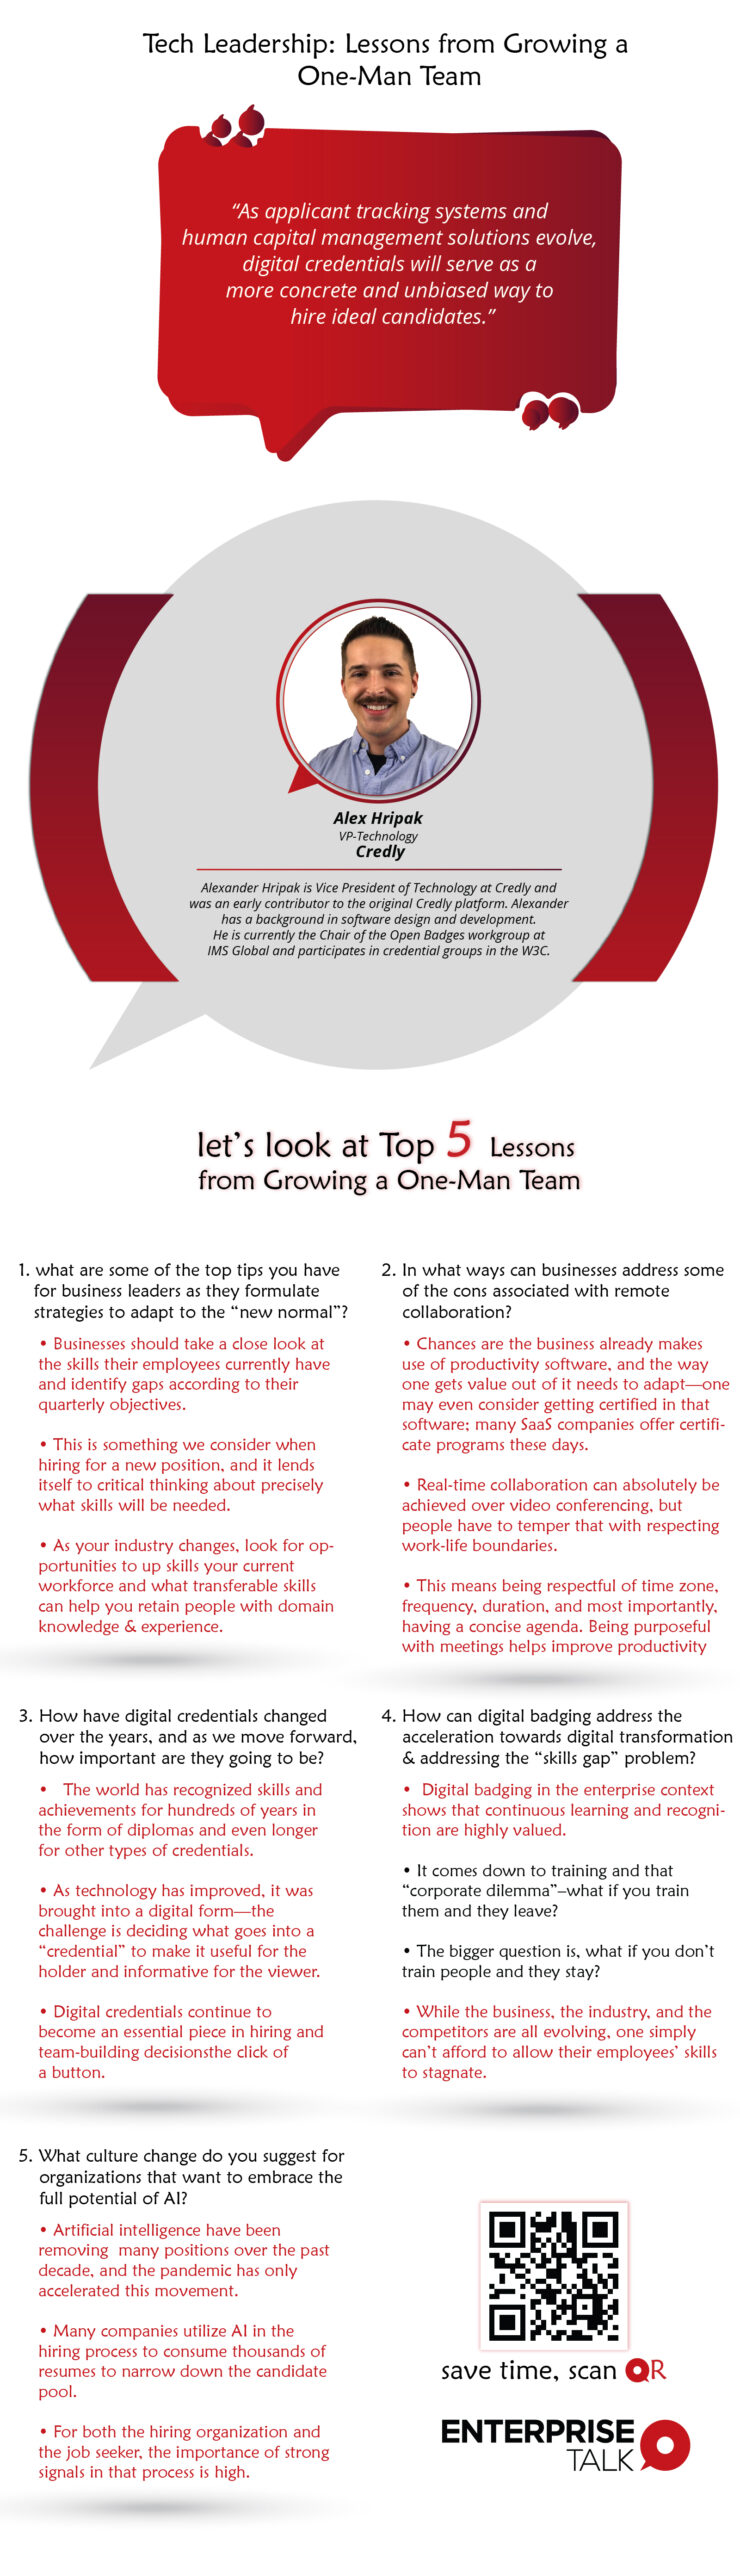 Infographic: Tech Leadership Lessons from Growing a One-Man Team-01 (1)